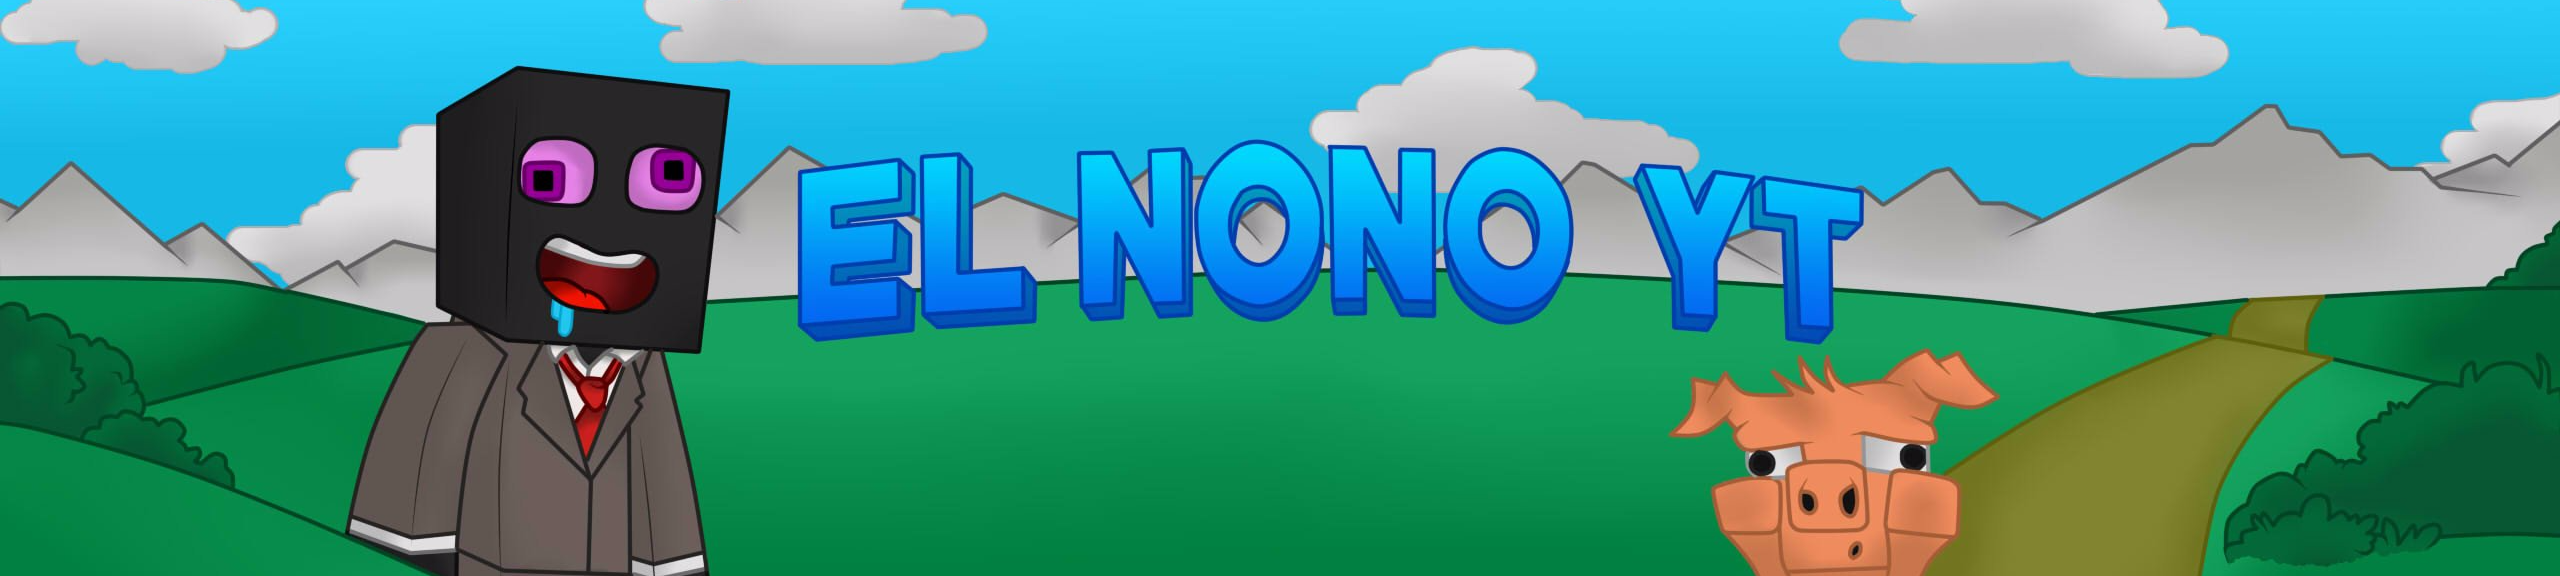 ElNonoyt background